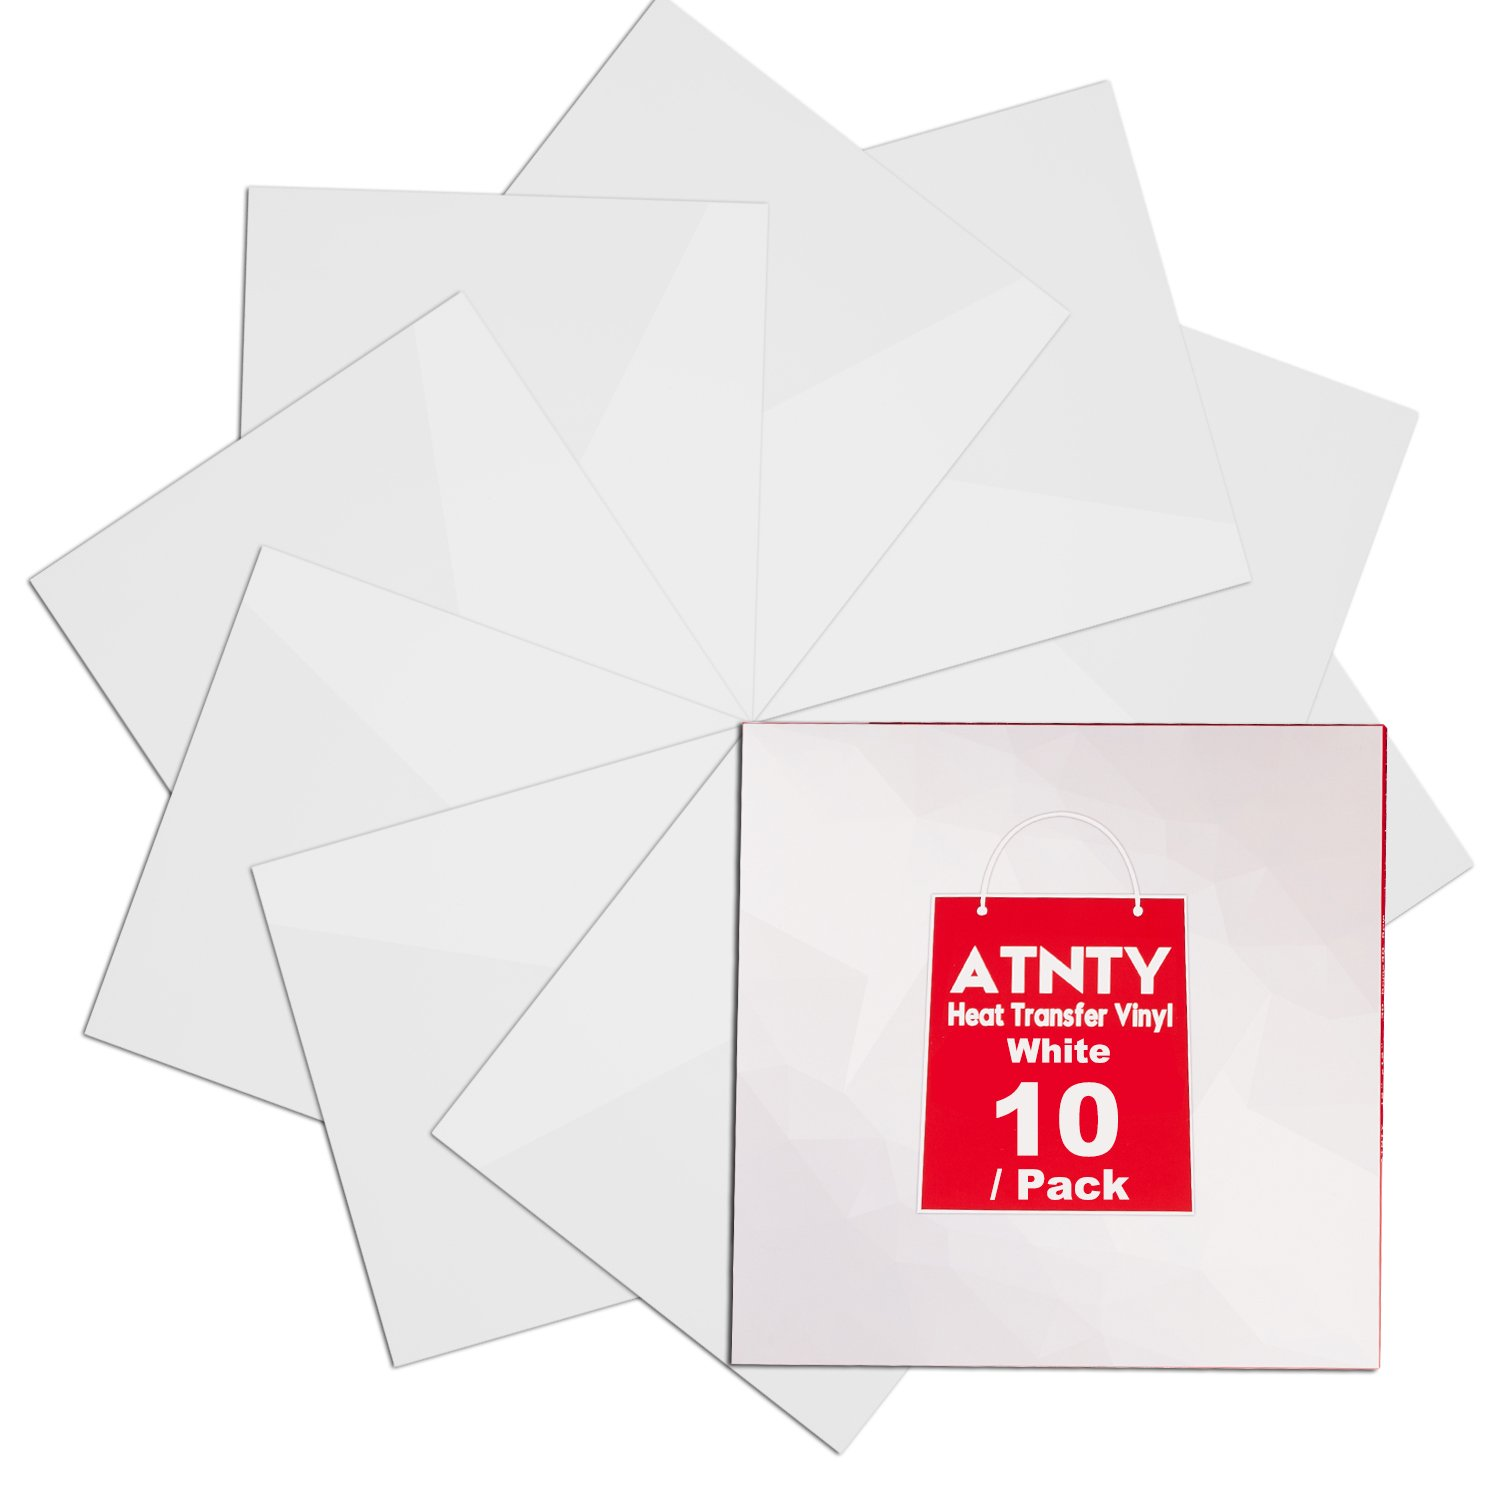 HTV Heat Transfer Vinyl White - 10 Pack 12'' x 12'' Sheets for Iron On T-Shirts